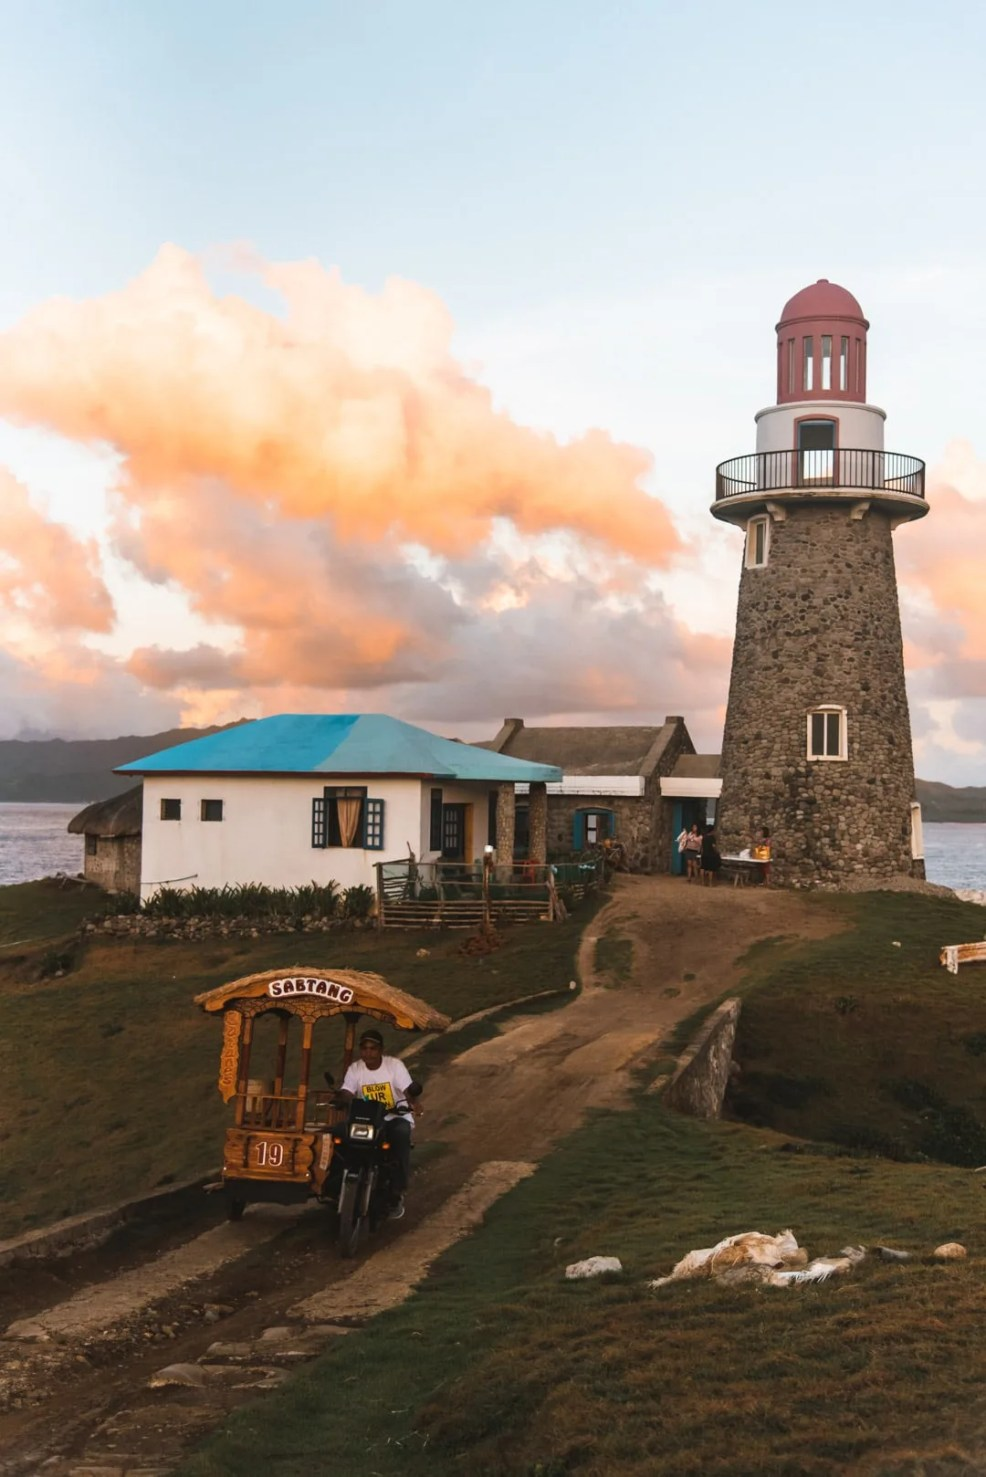 batanes itinerary, batanes travel itinerary, Transportation around Batanes, Batanes tourist spots, atms in batanes, wifi connection in batanes, how to go to Batanes, Sabtang lighthouse